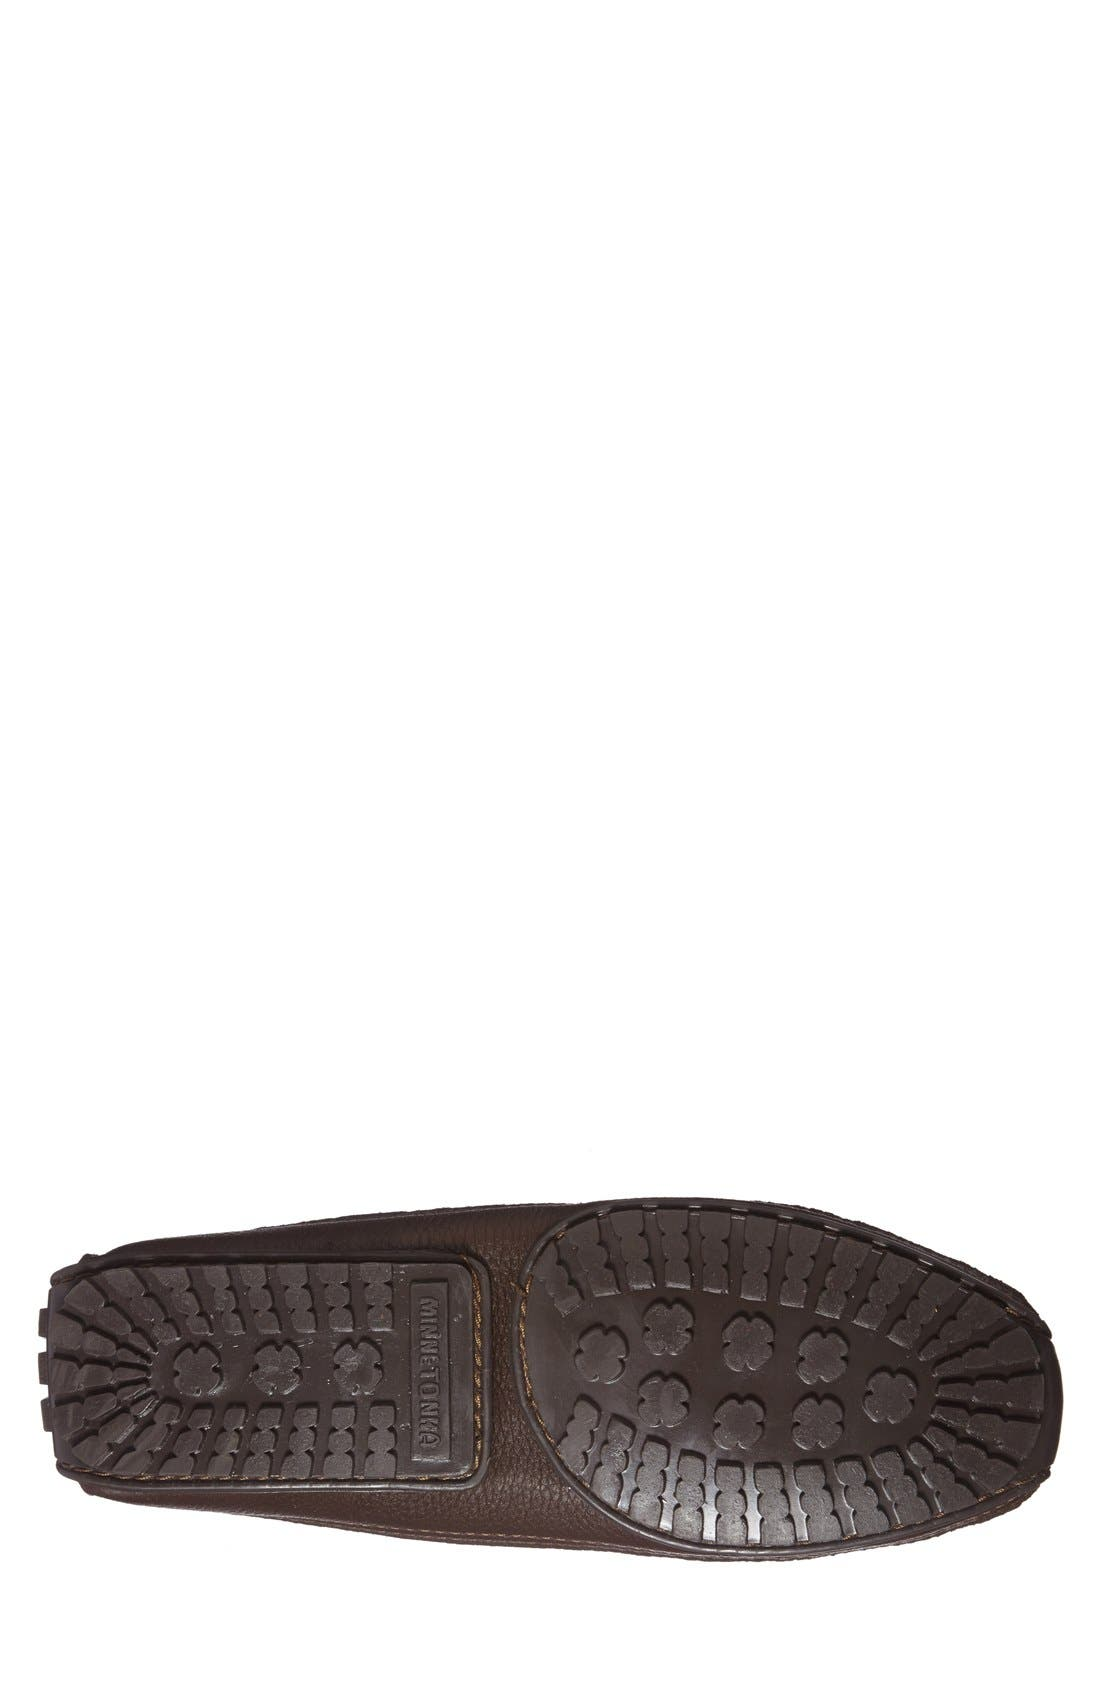 Moosehide Moccasin,                             Alternate thumbnail 3, color,                             CHOCOLATE